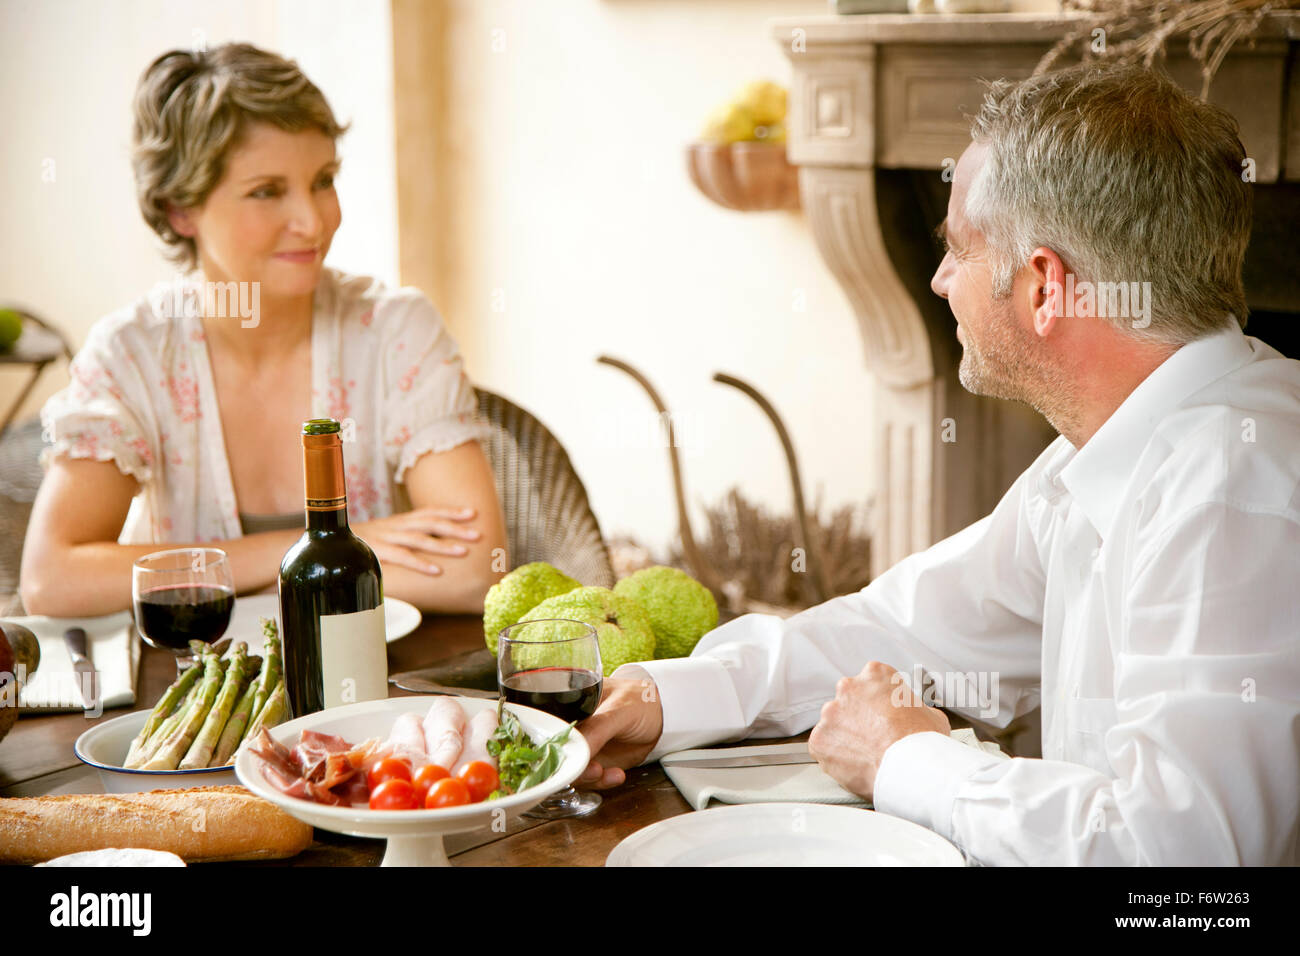 Couple sitting at laid table looking at each other - Stock Image